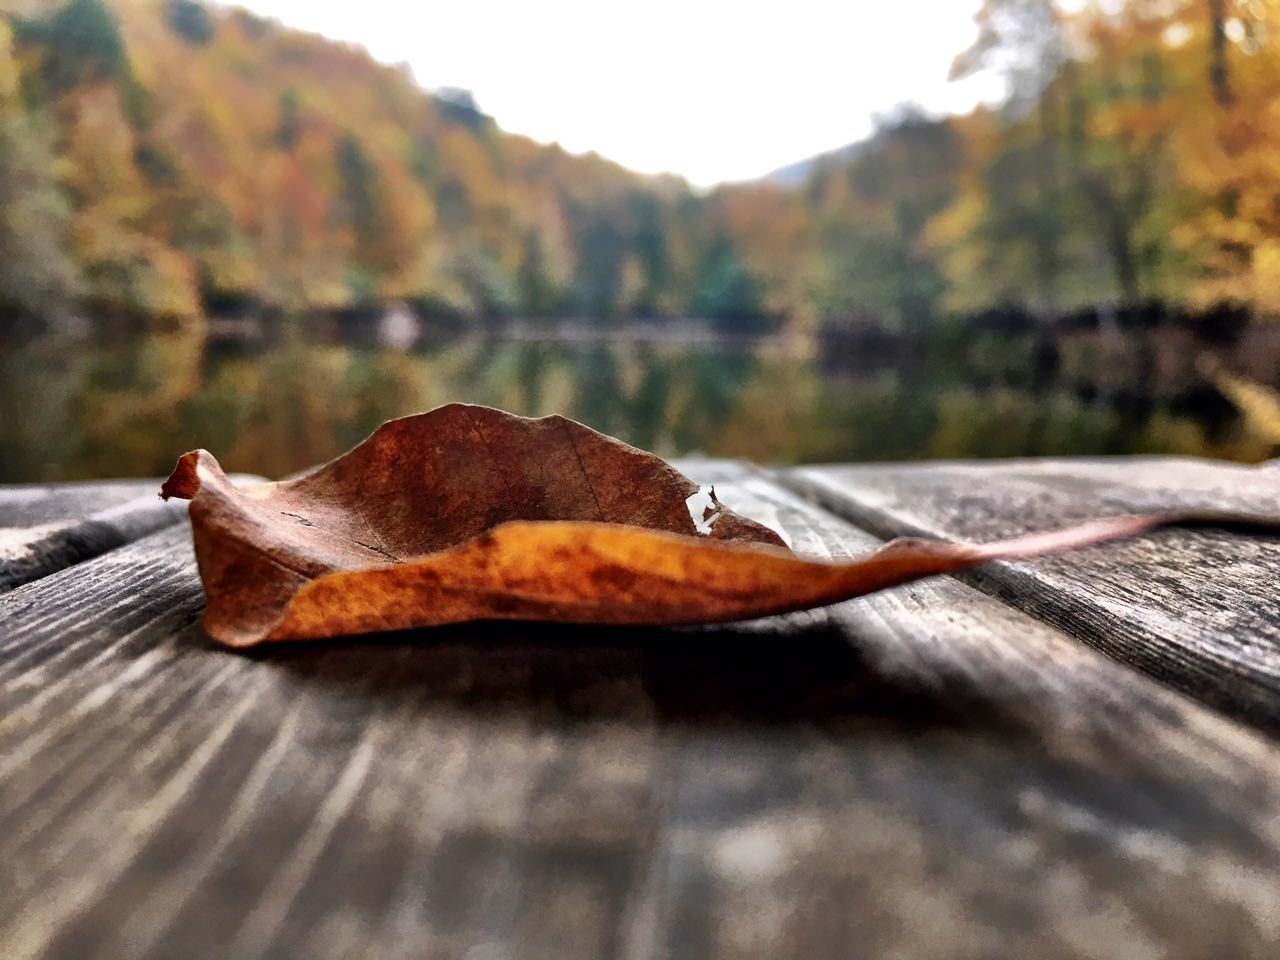 autumn, leaf, dry, change, nature, day, no people, outdoors, close-up, wood - material, beauty in nature, tree, maple